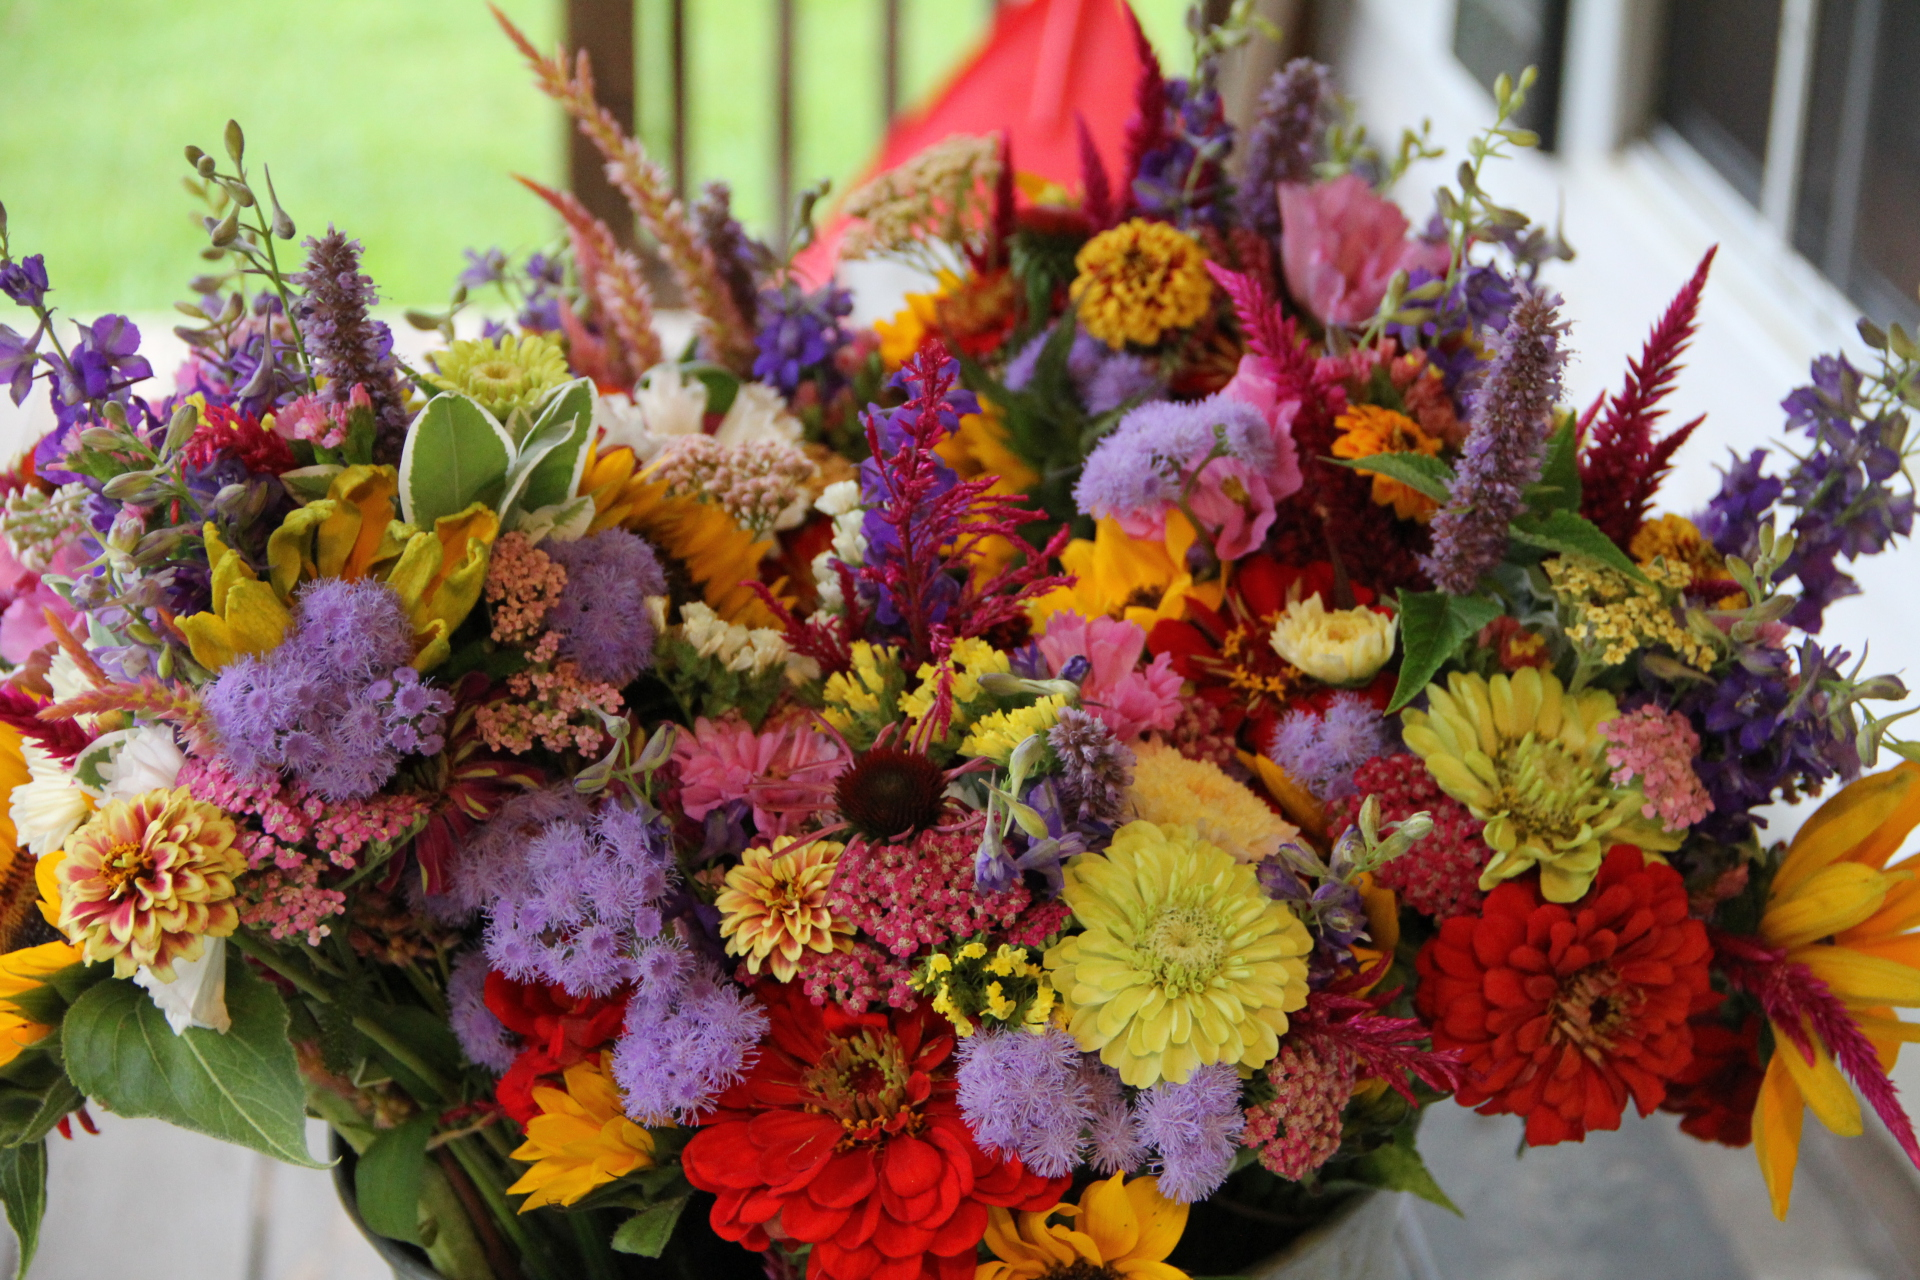 Flowers bouquets made for a farm event